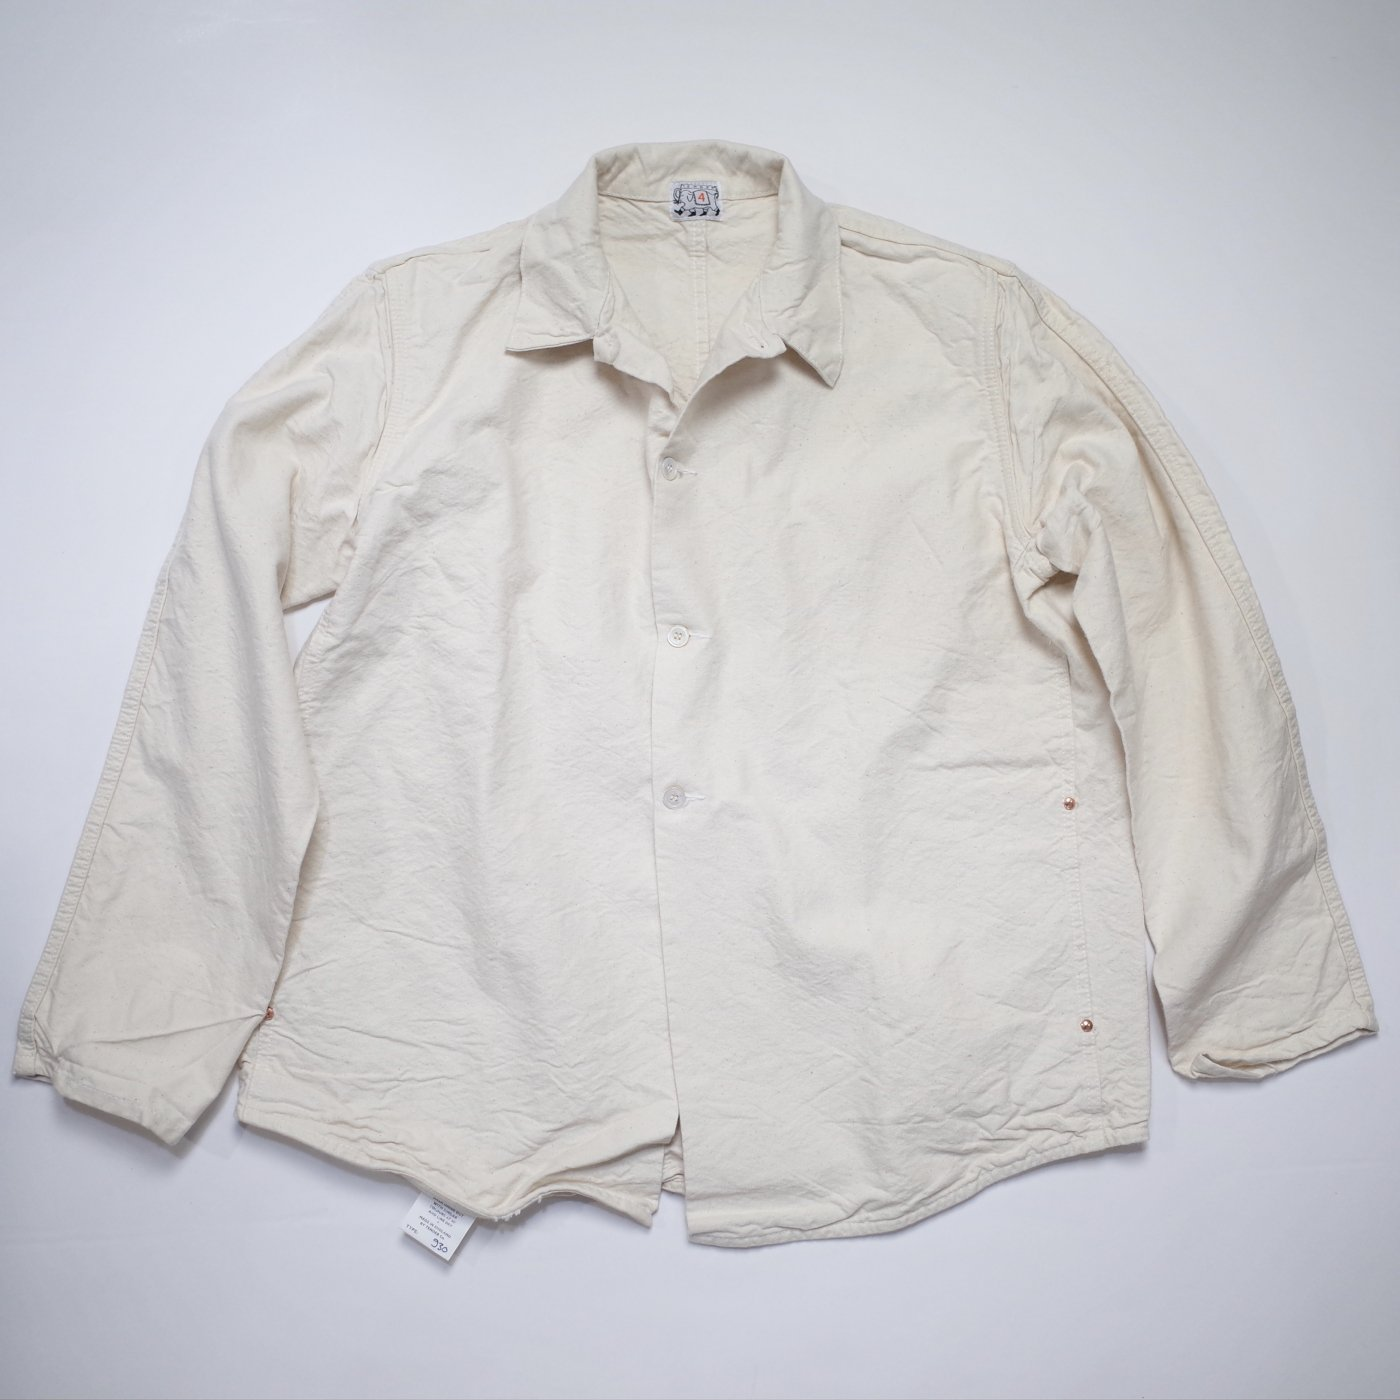 TENDER Co. 18SS -Type930 Double Butterfly Jacket- Shoemaker's Canvas